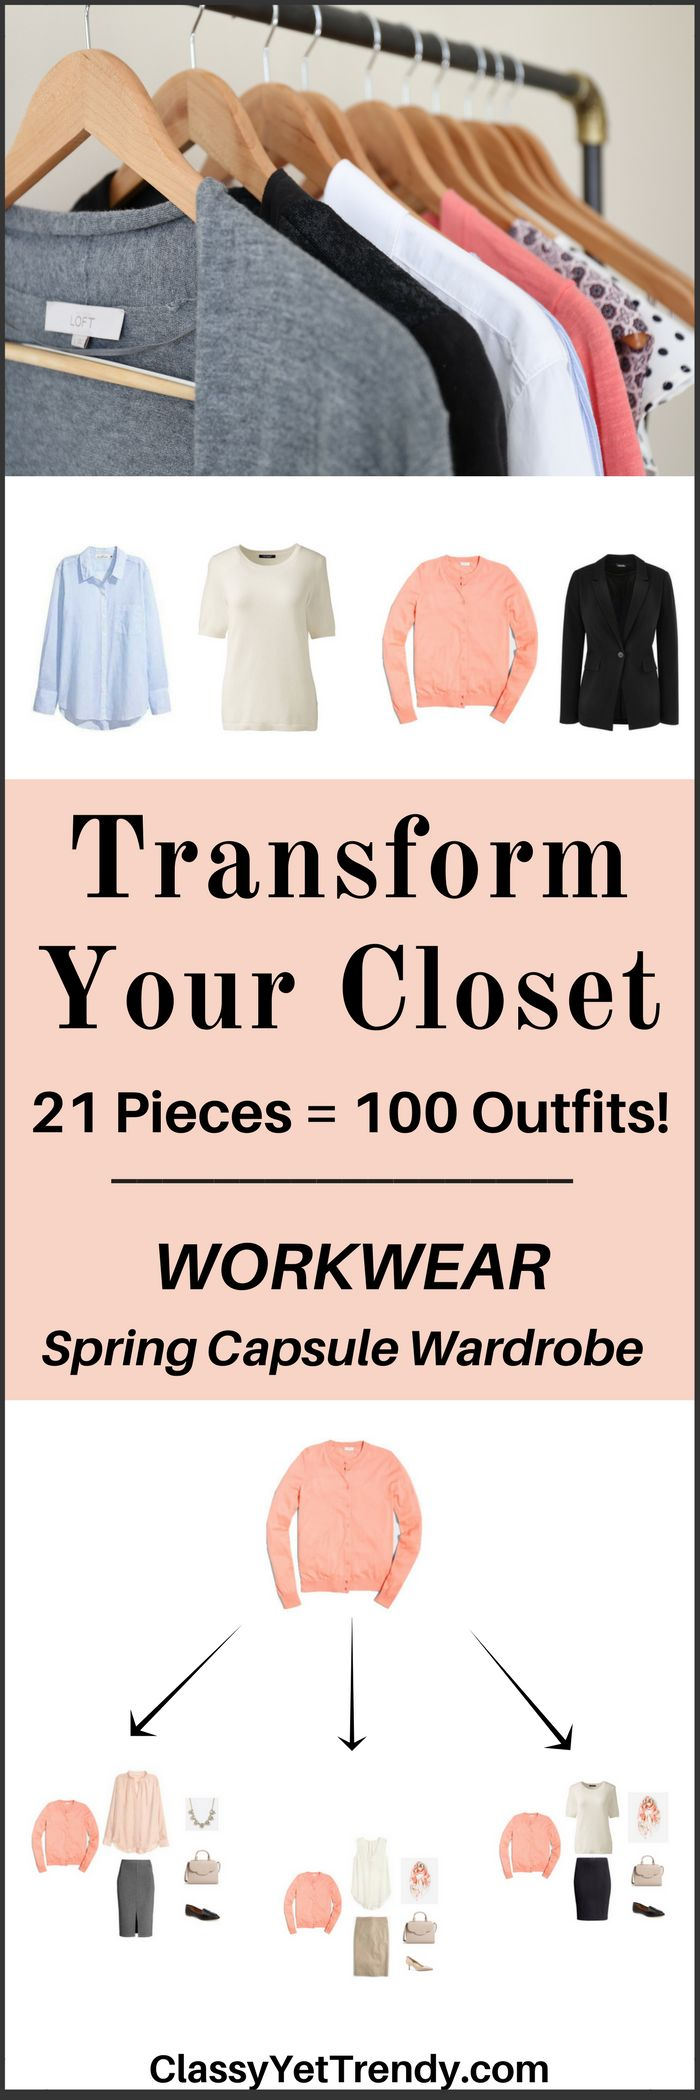 "IS YOUR CLOSET FULL OF CLOTHES, BUT YOU ""HAVE NOTHING TO WEAR TO WORK""? YOU NEED…   The Workwear Capsule Wardrobe e-Book: Spring 2017 Collection!   A complete workwear capsule wardrobe guide for the Spring season, perfect for the office! With all clothes and shoes selected for you PLUS, 100 outfit ideas..."